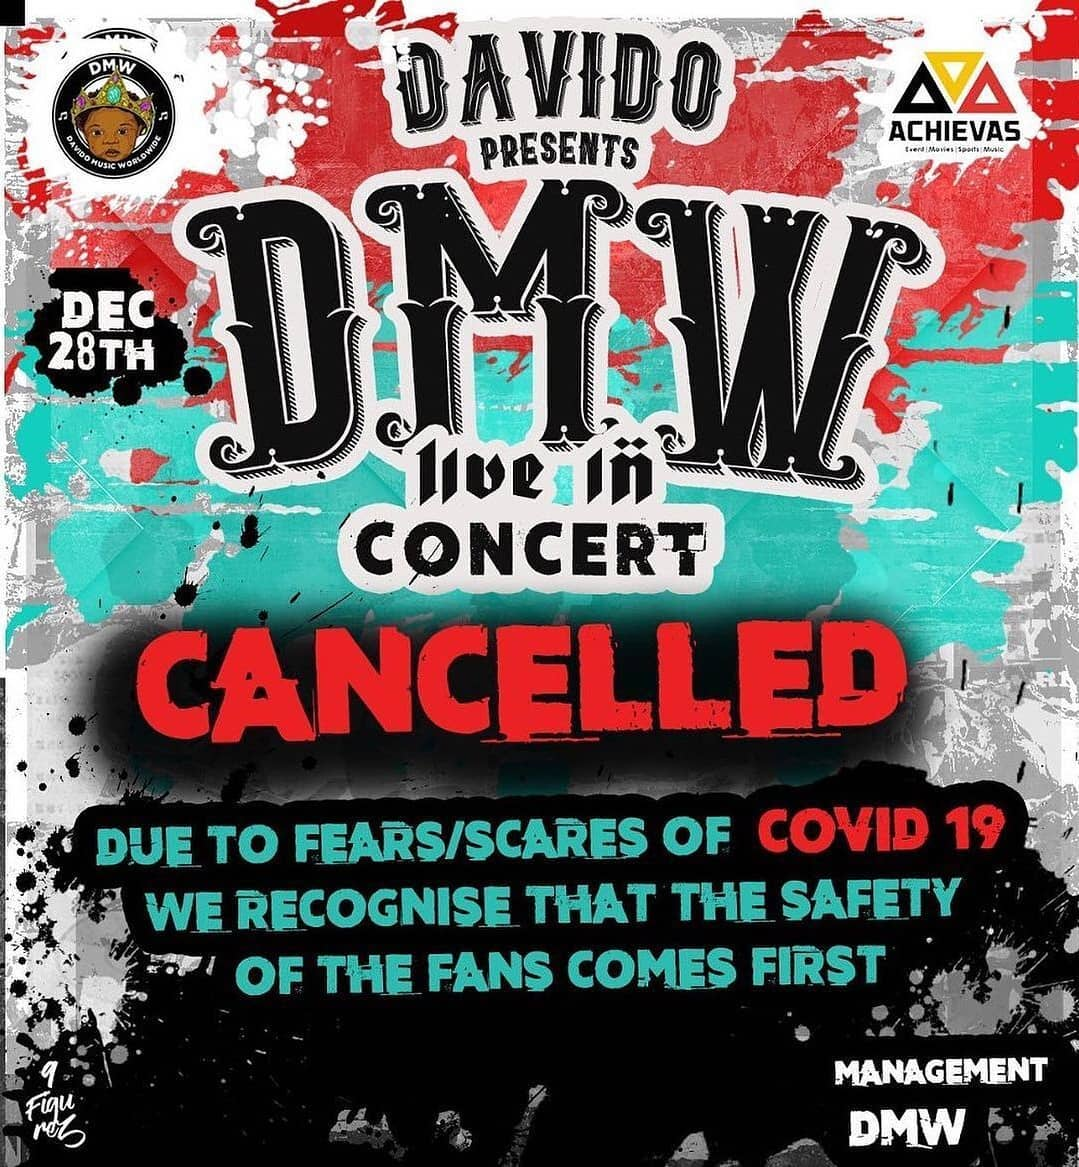 Davido cancels concert due to fears